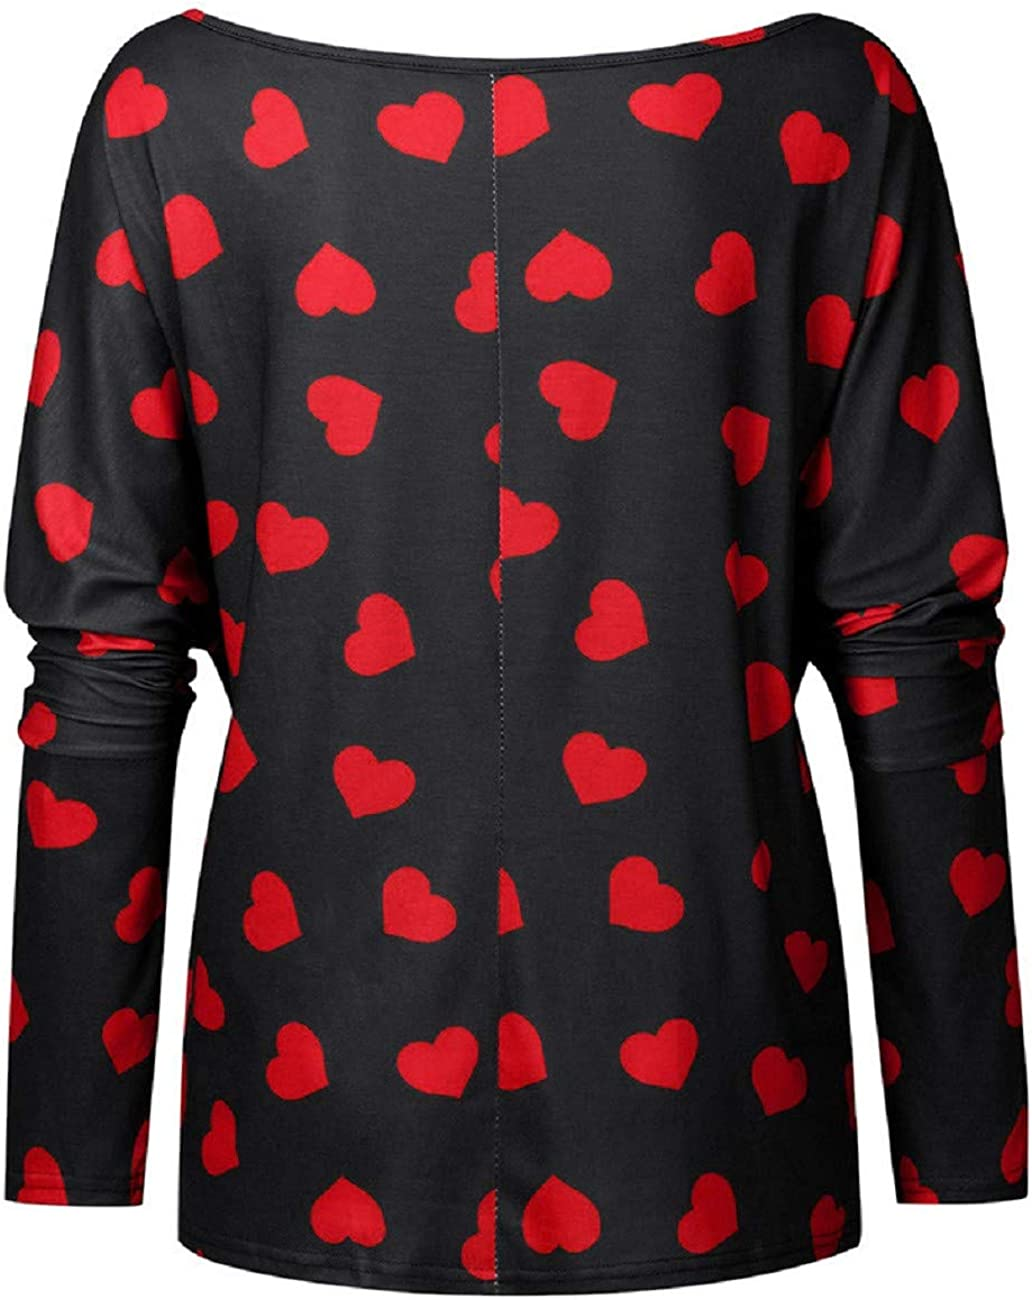 FAPIZI Women Valentines Day O Neck Letter Print Blouse Solid Short Sleeve Casual T-Shirt Loose Sweatshirt Top